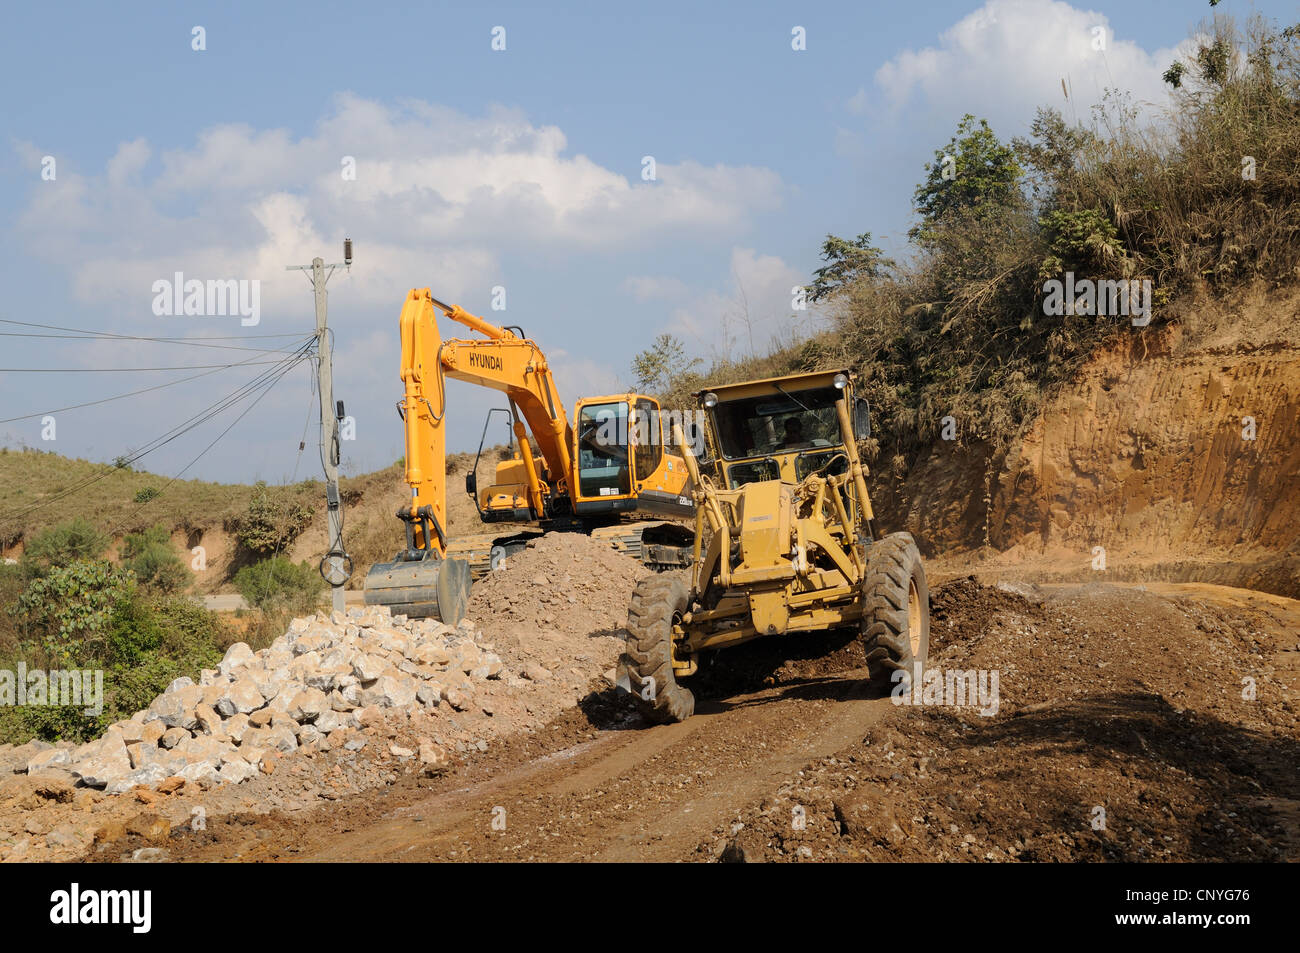 Laos landslide on a main road being repaired by machinery after a landslide caused during the rainy season - Stock Image